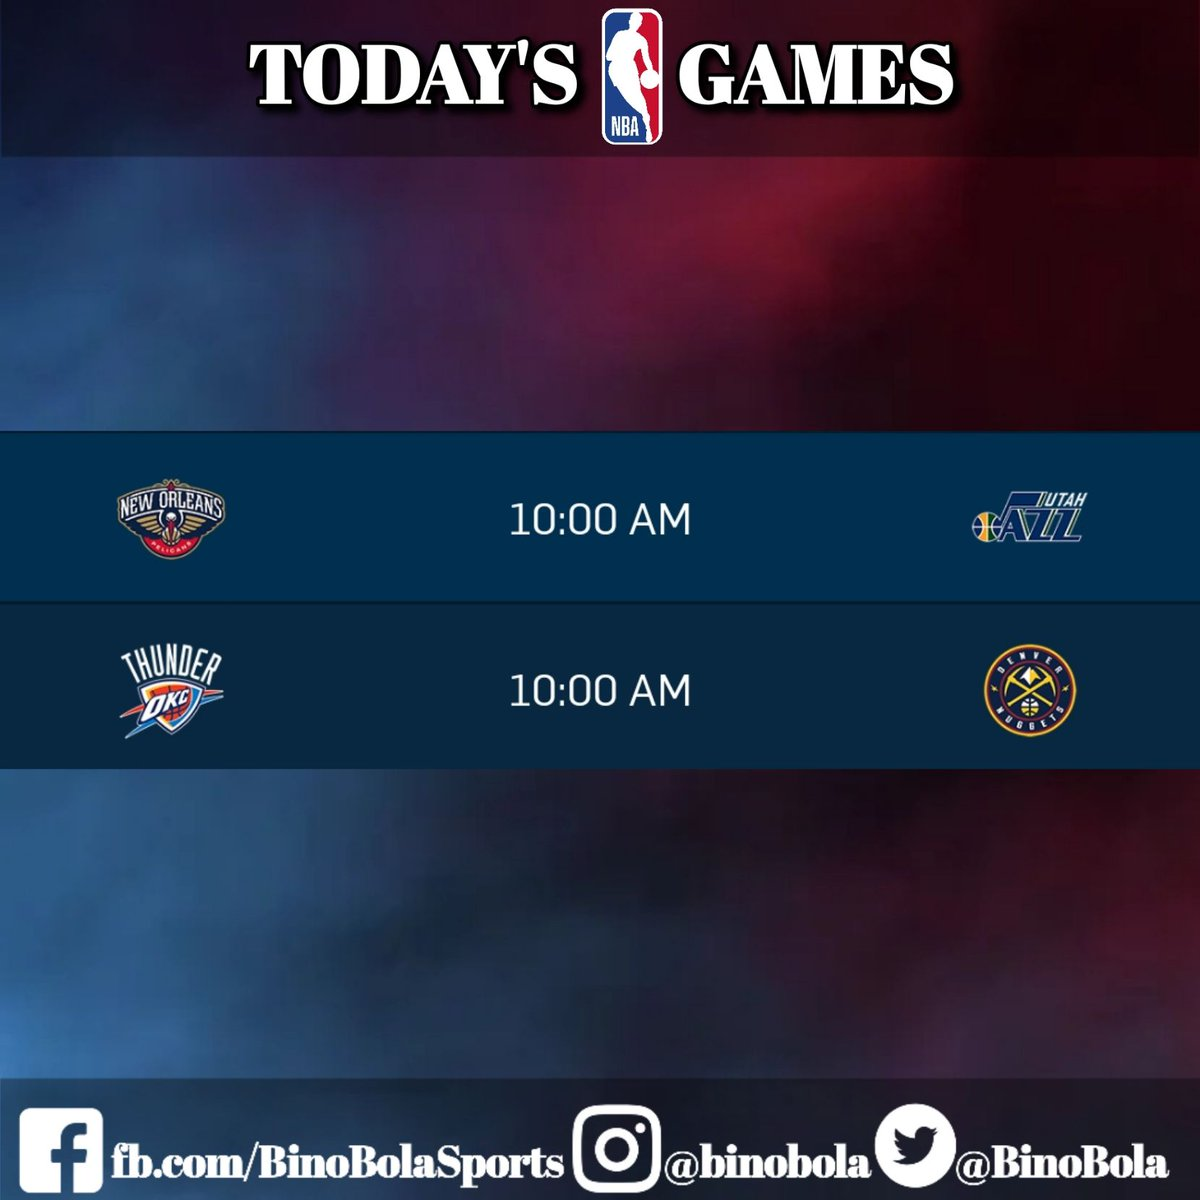 Take a look at the NBA games today!   #RegularSeason #Day28 #BinoBolaSports #GamesSchedules